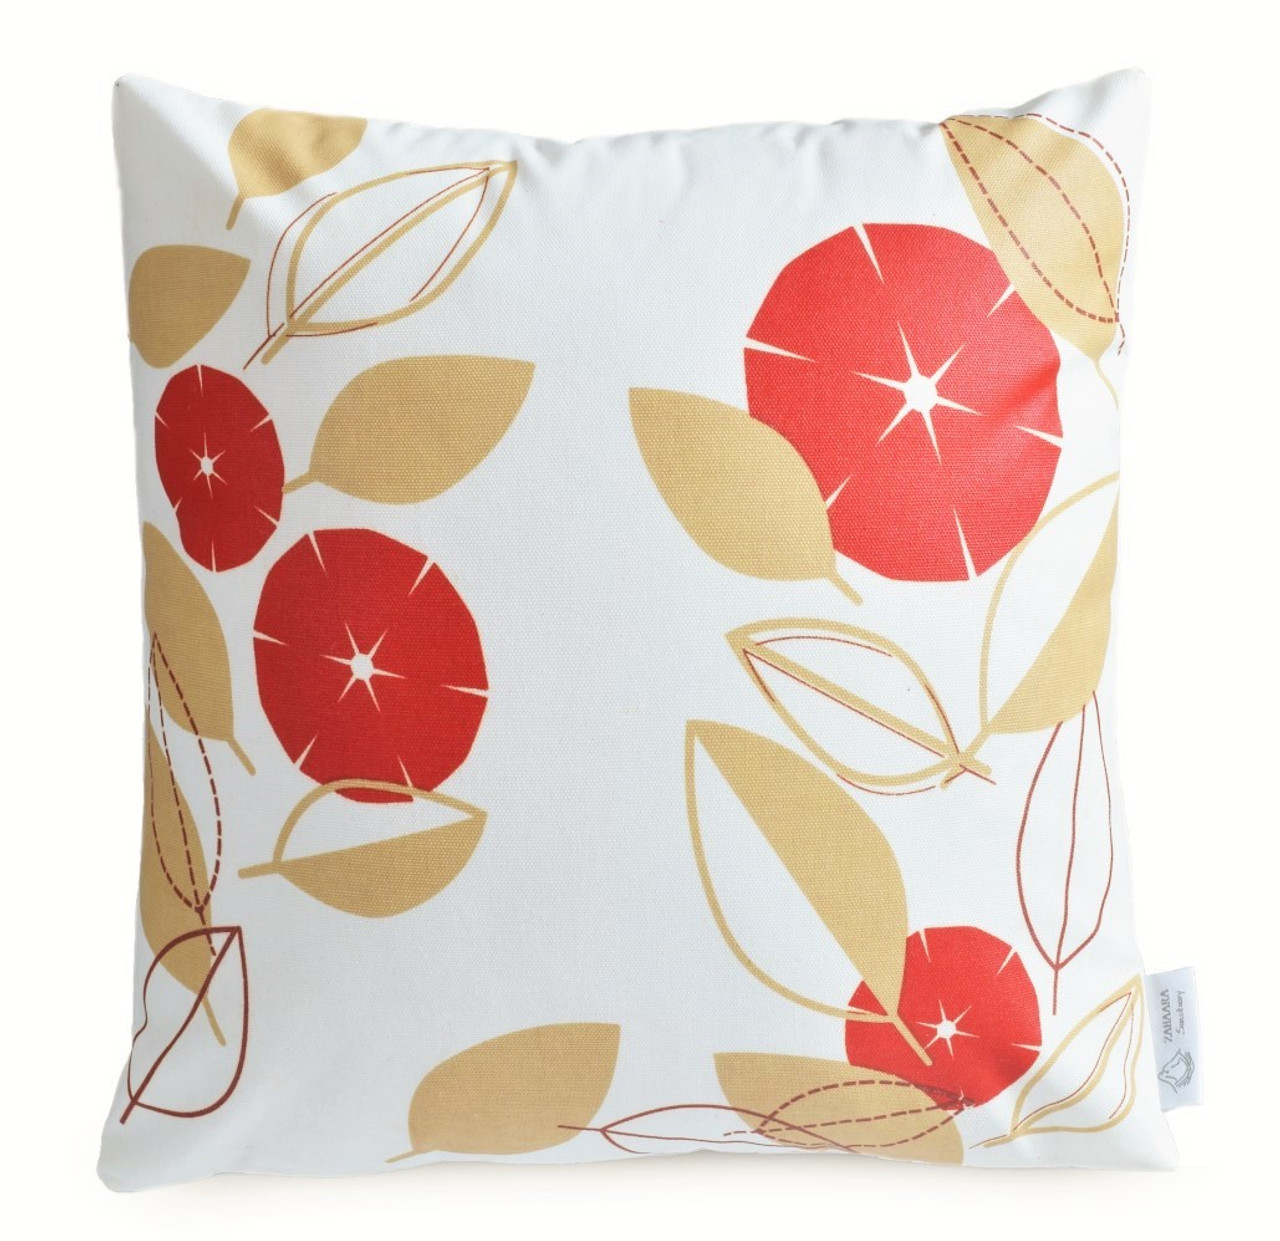 DEFECTIVE CHEAP WATERPROOF Outdoor cushion Red FLORAL patio pillow ...